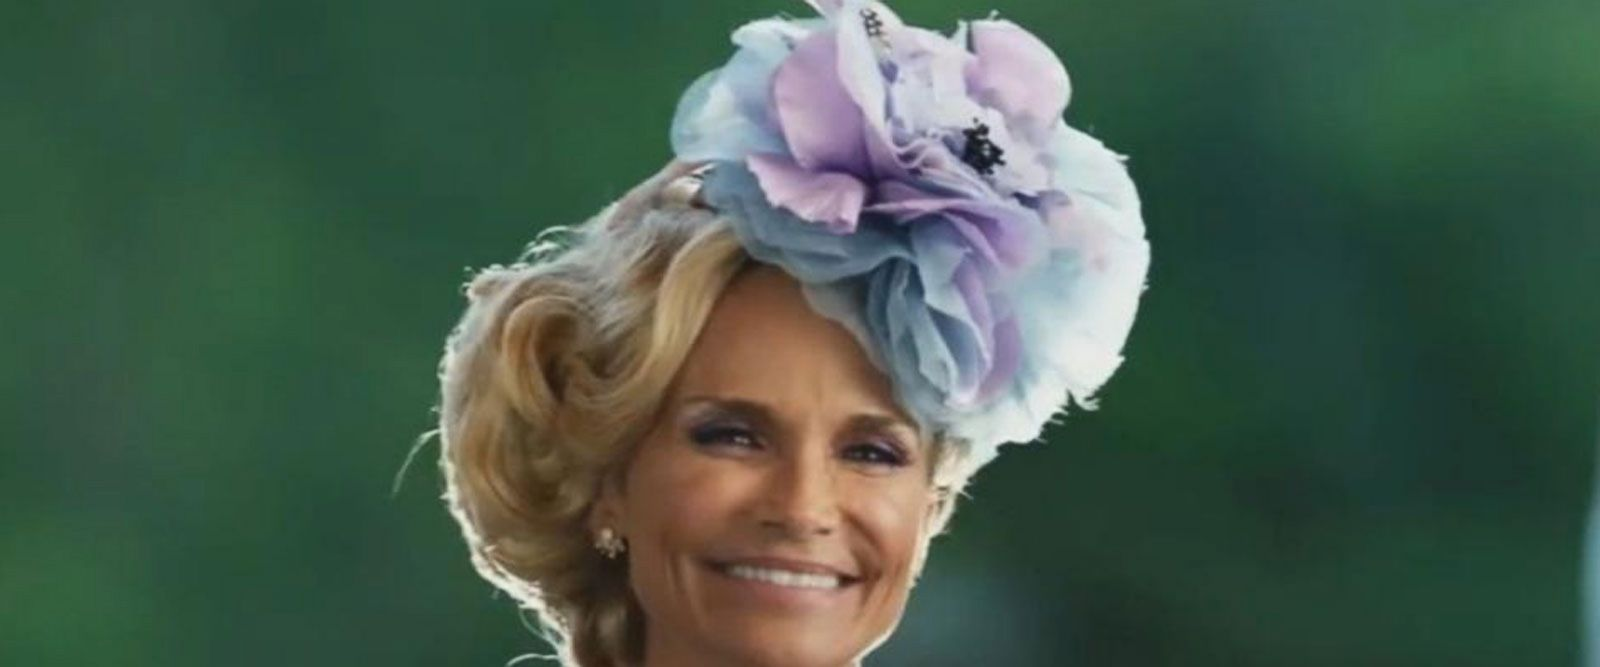 VIDEO: Kristin Chenoweth on her role in 'American Gods'